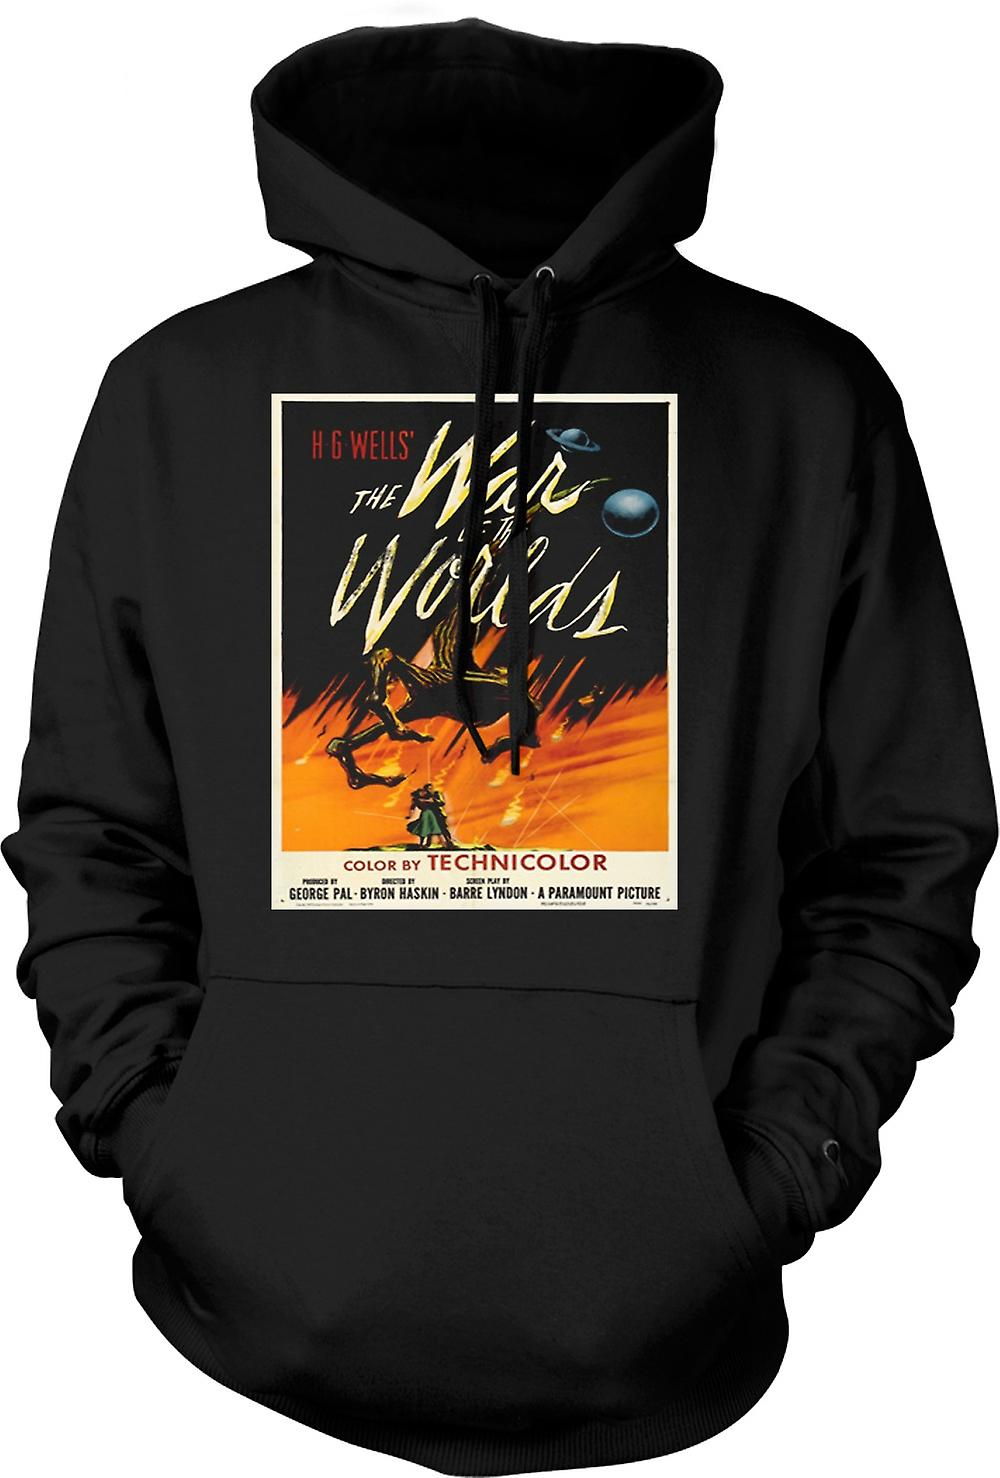 Mens Hoodie - War Of The Worlds - H G Wells - Poster